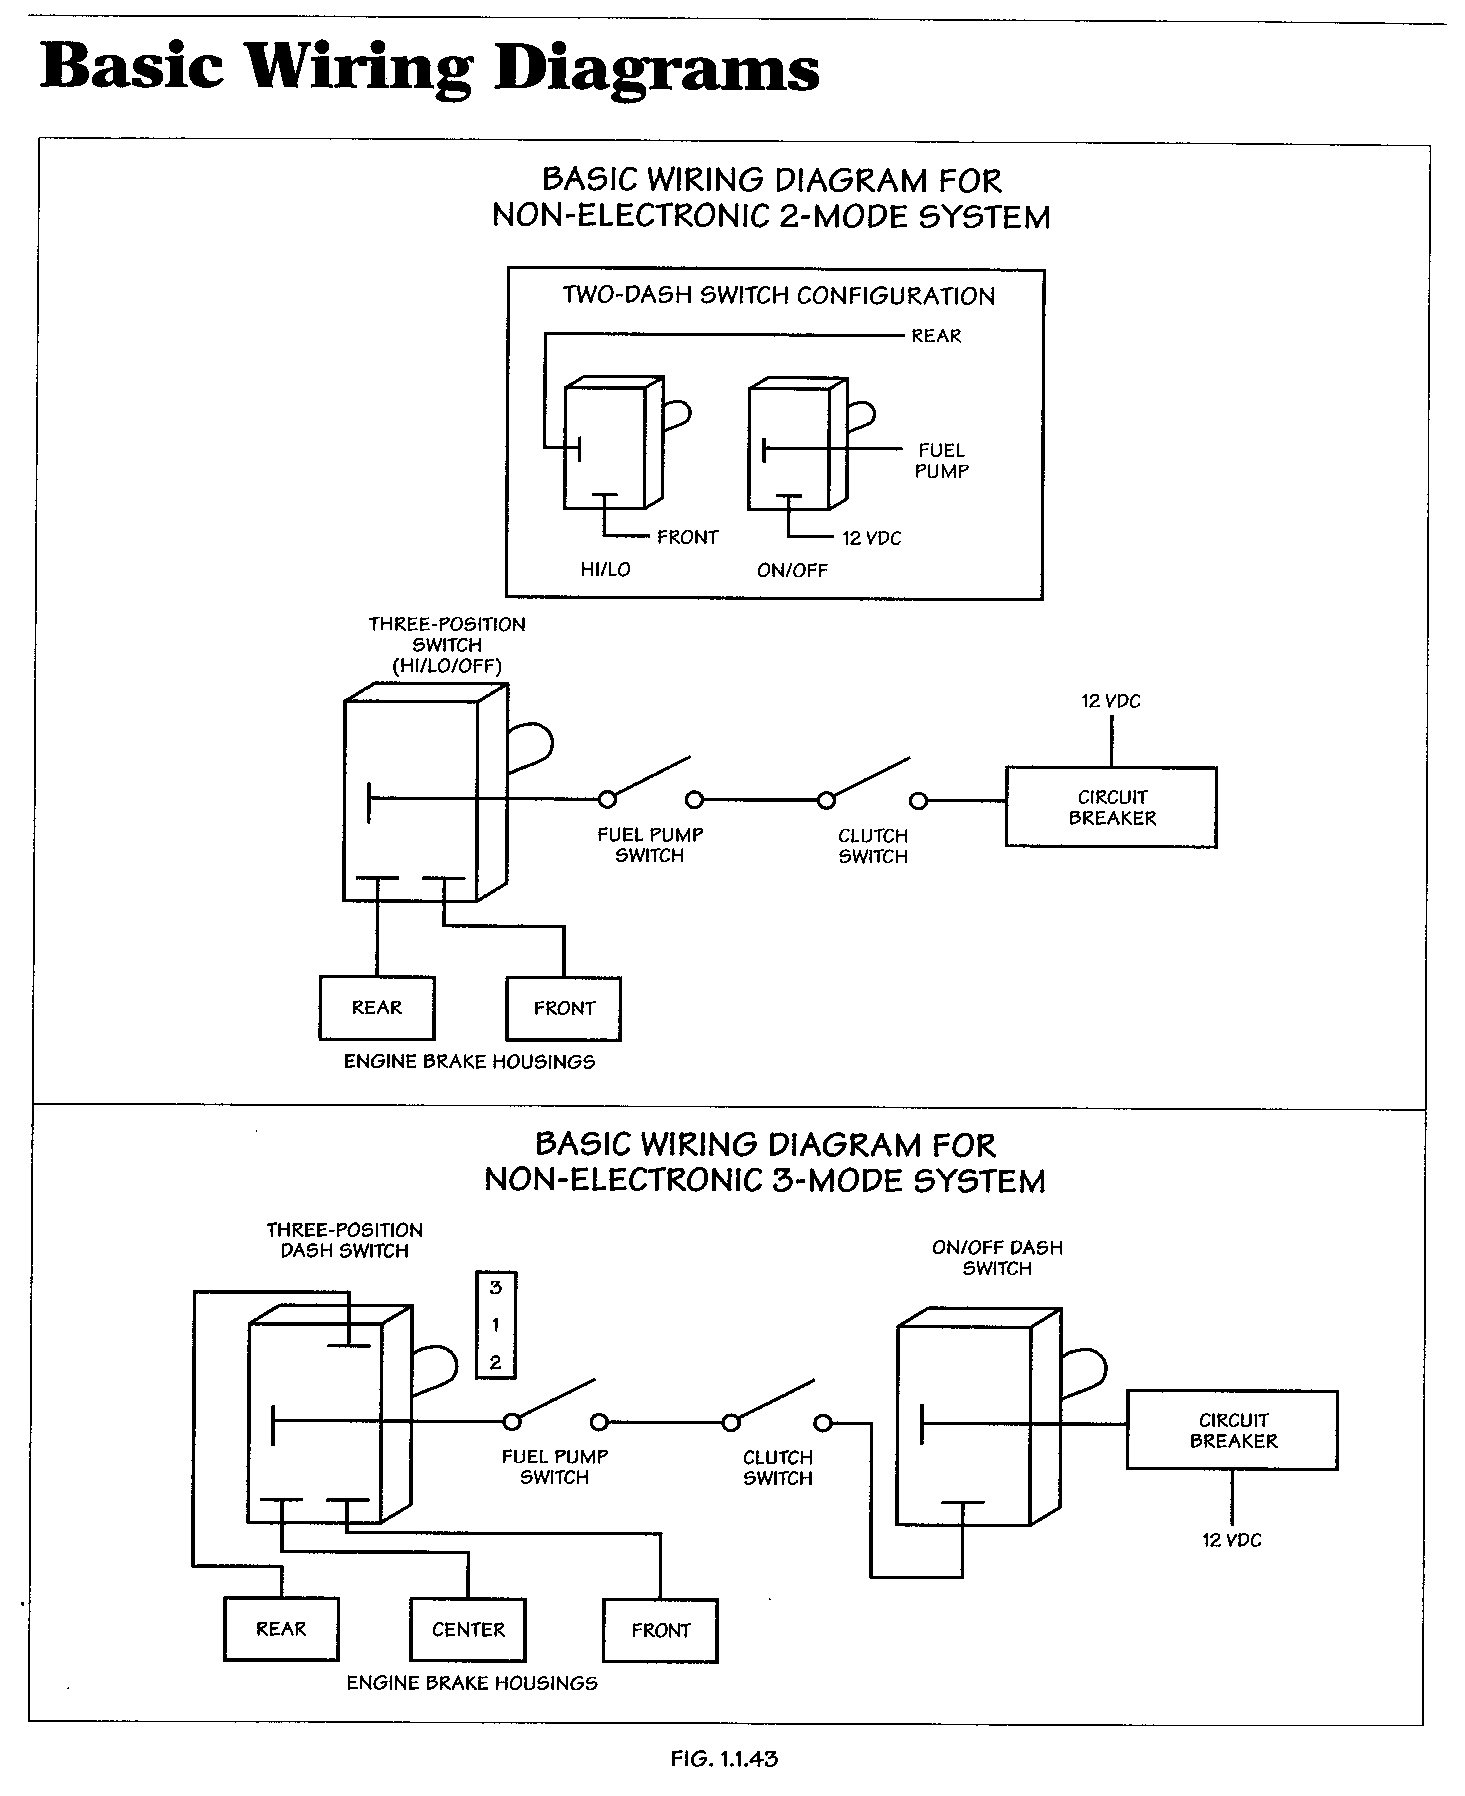 Cummins N14 Wiring Diagram Data Diagrams Qsm11 I Need A For 400 Cummings Jake Brake Is Celect Schematic